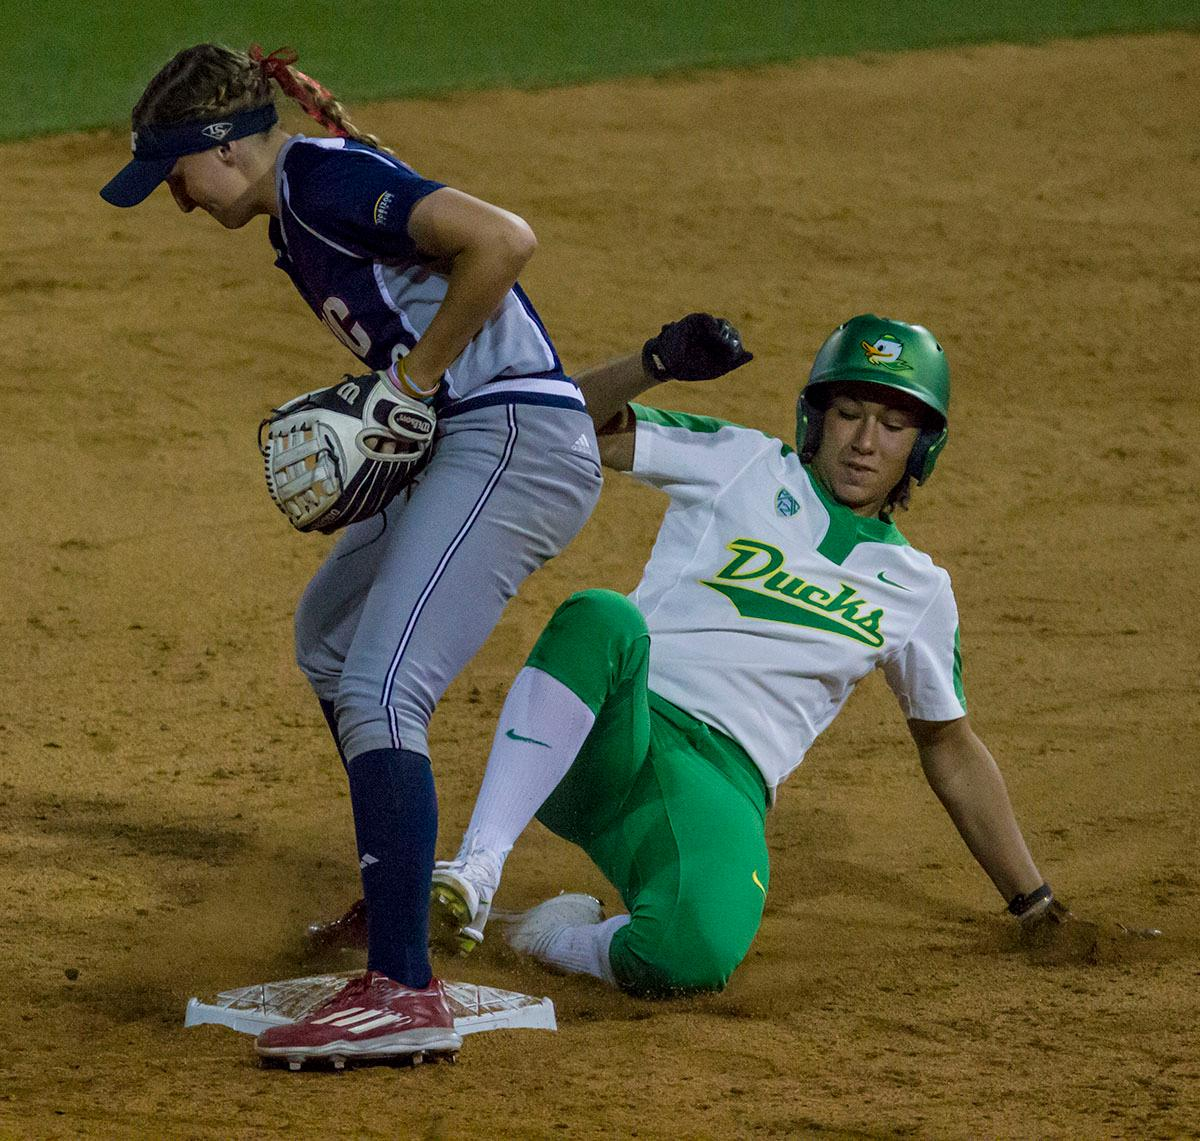 Ducks center-fielder Shannon Rhodes (#9) slides into second base. The No. 3 Oregon Ducks defeated the University of Illinois Chicago Flames 13-0 with the run-rule on Saturday night at Jane Sanders Stadium. The Ducks scored in every inning and then scored nine runs at the bottom of the fourth. The Oregon Ducks are now 22-0 in NCAA regional games. The Oregon Ducks play Wisconsin next on Saturday, May 20 at 2pm at Jane Sanders Stadium. Photo by Aaron Alter, Oregon News Lab